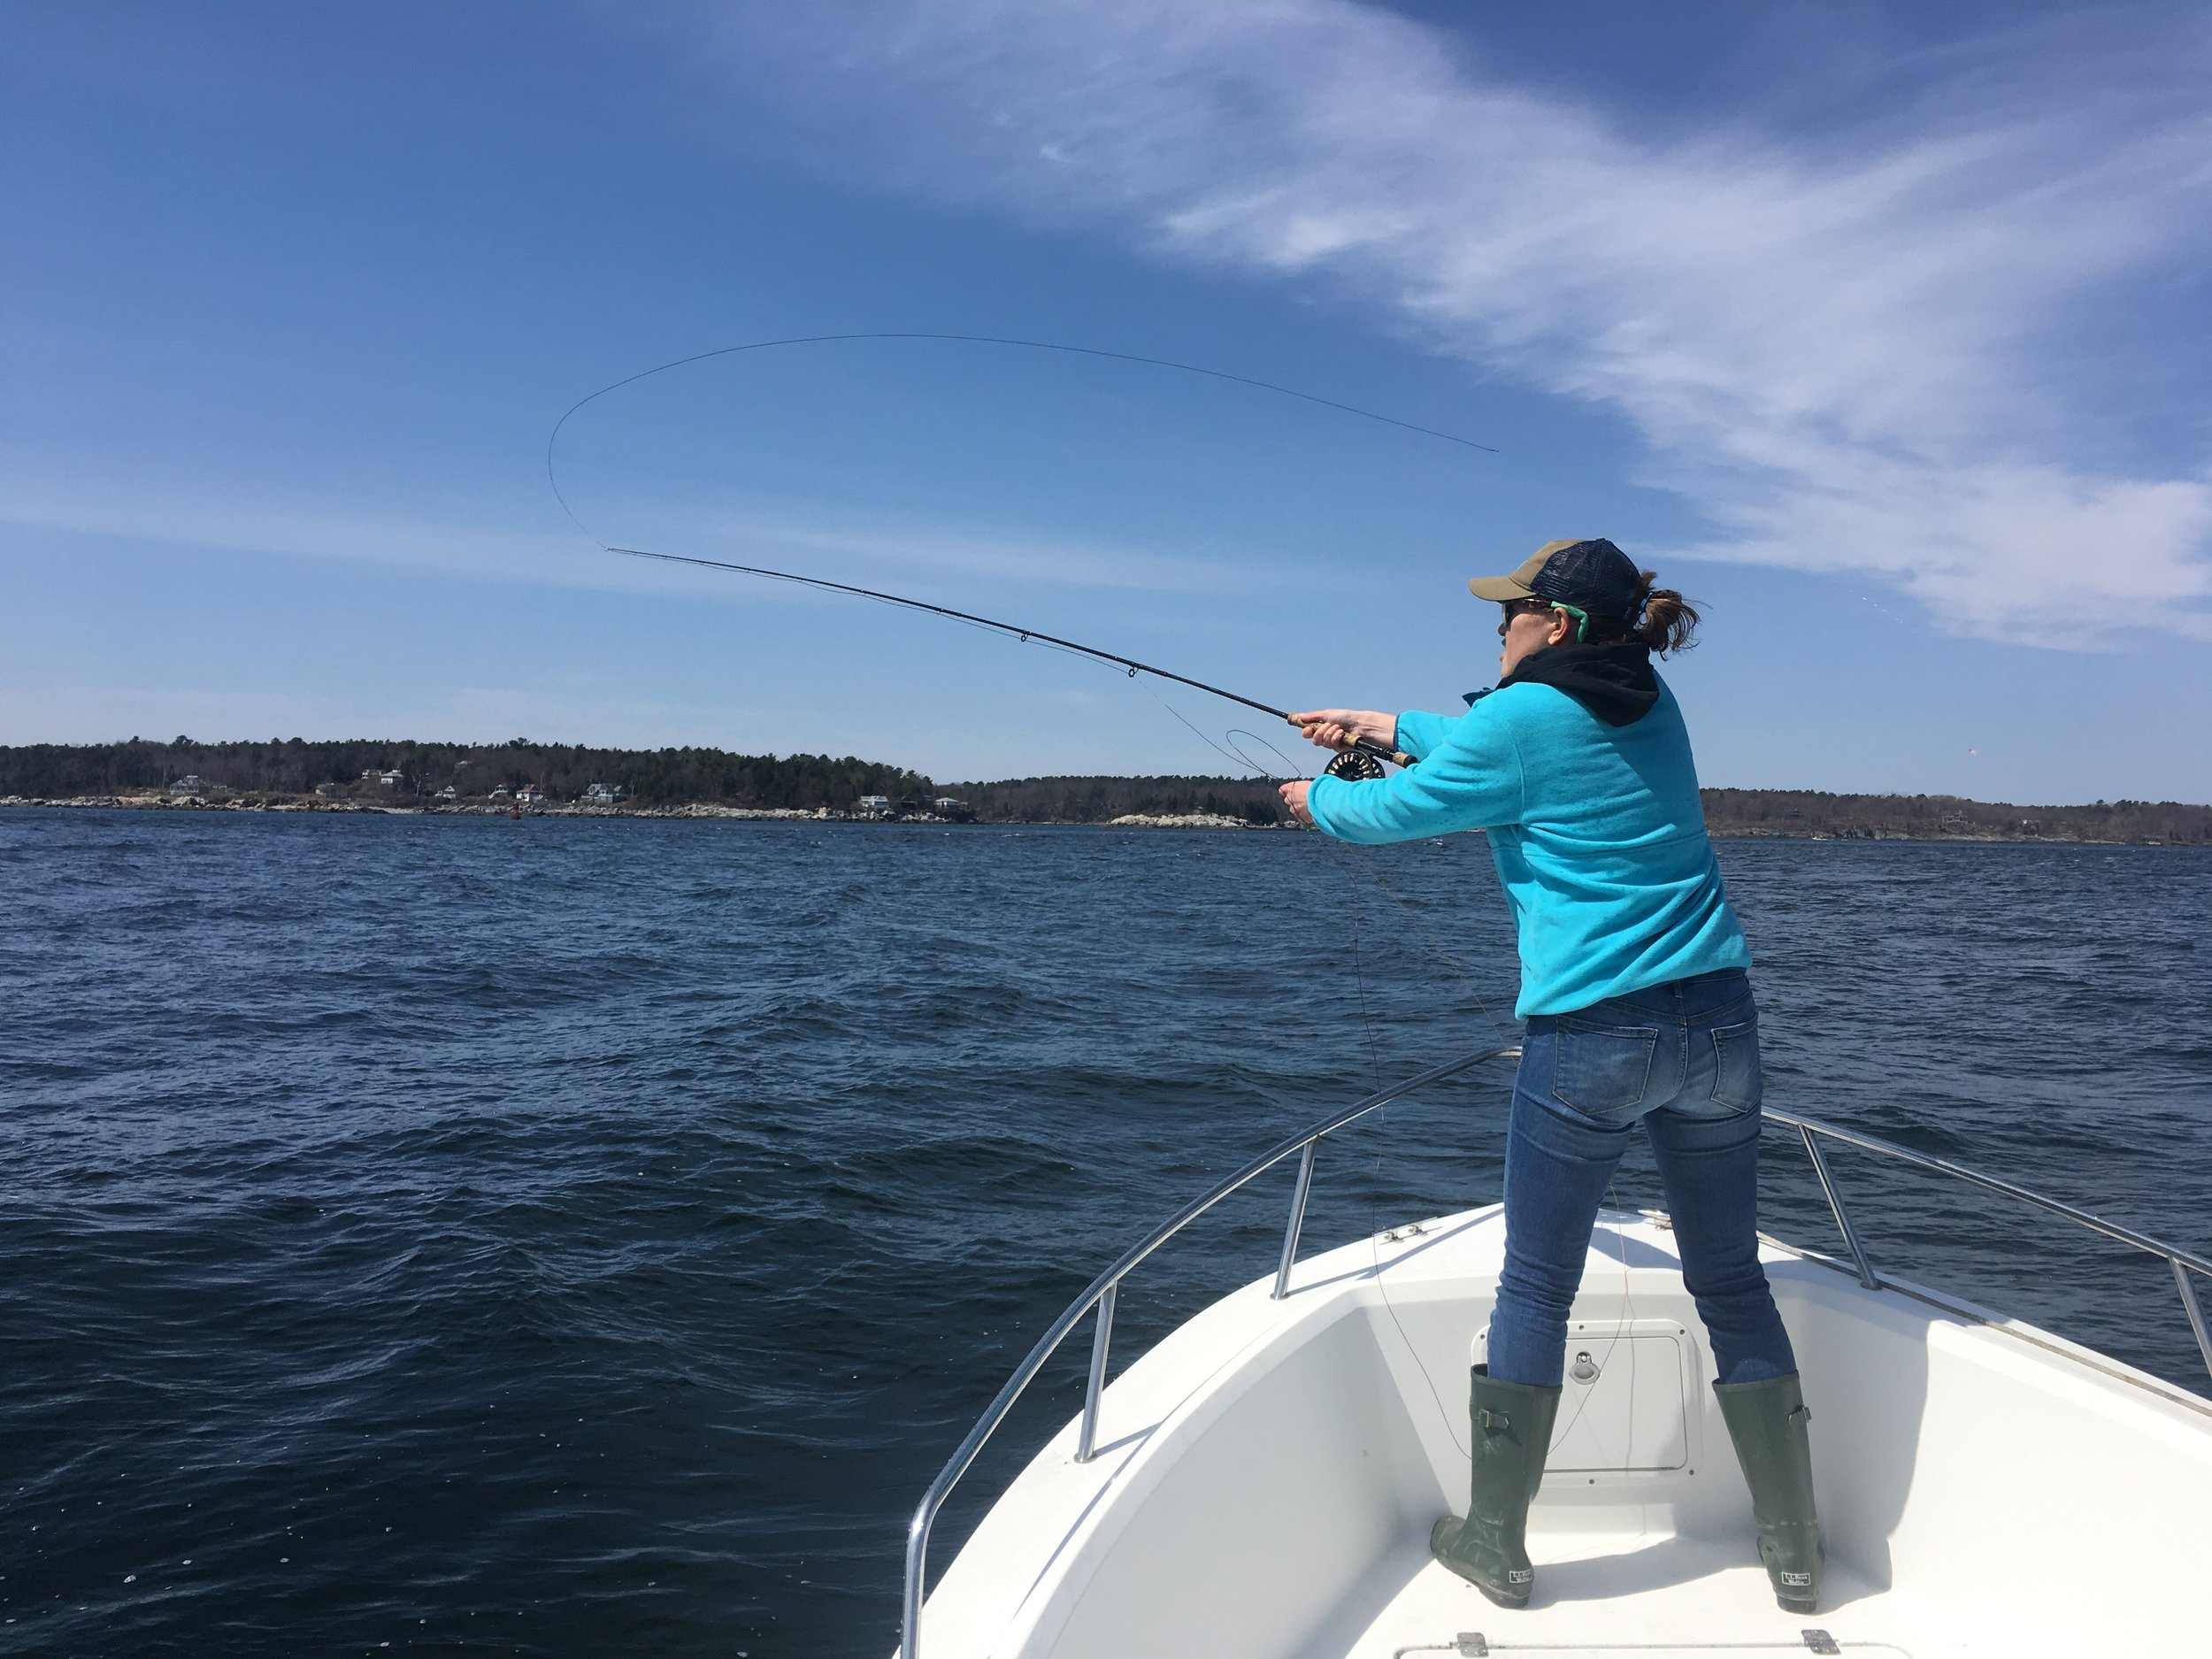 Sarah looking for some early season fish on the Aquasport in Hussey Sound.